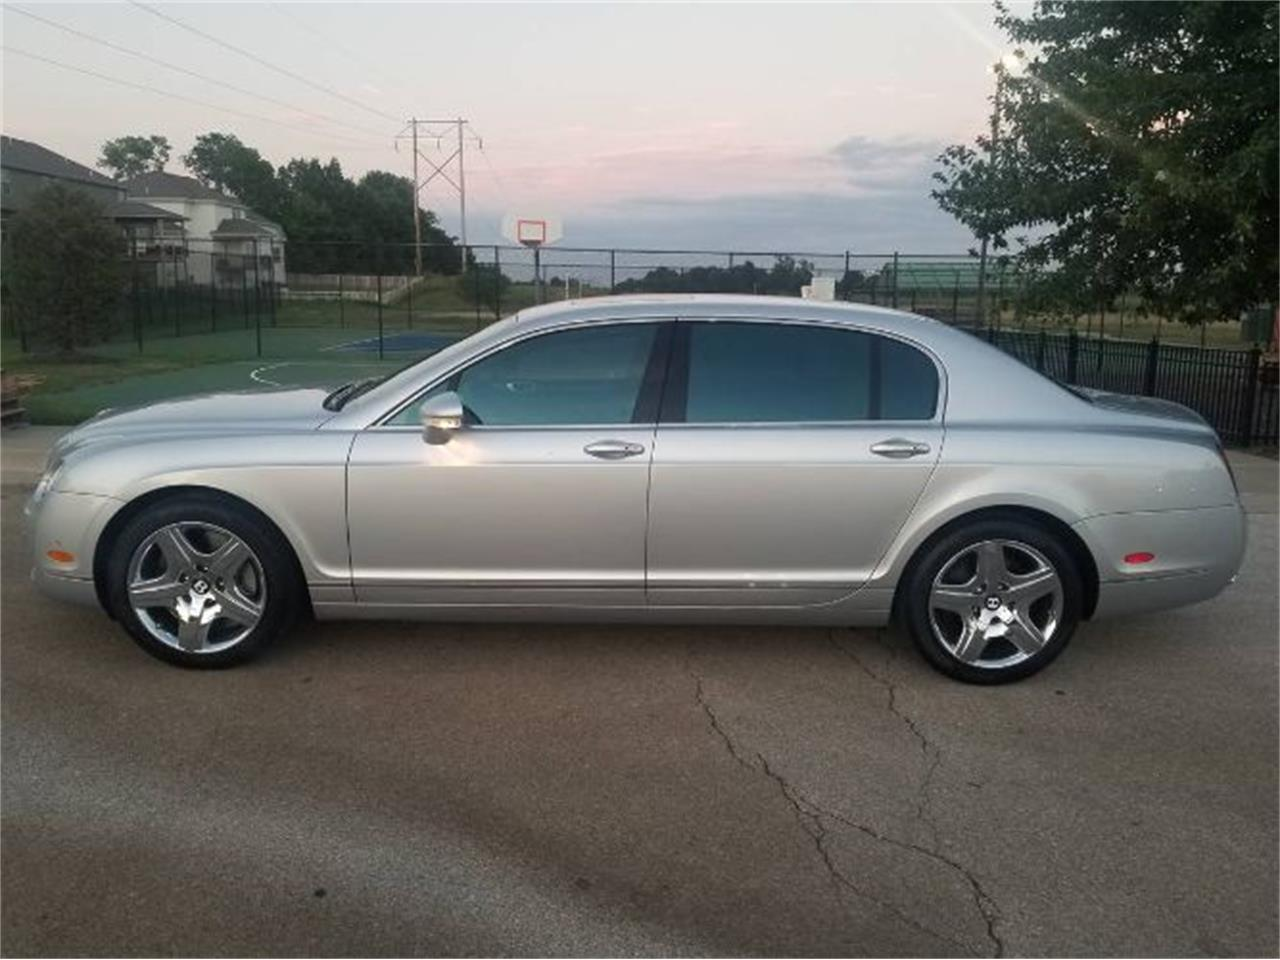 Large Picture of 2007 Continental located in Michigan - $47,195.00 Offered by Classic Car Deals - QNUI